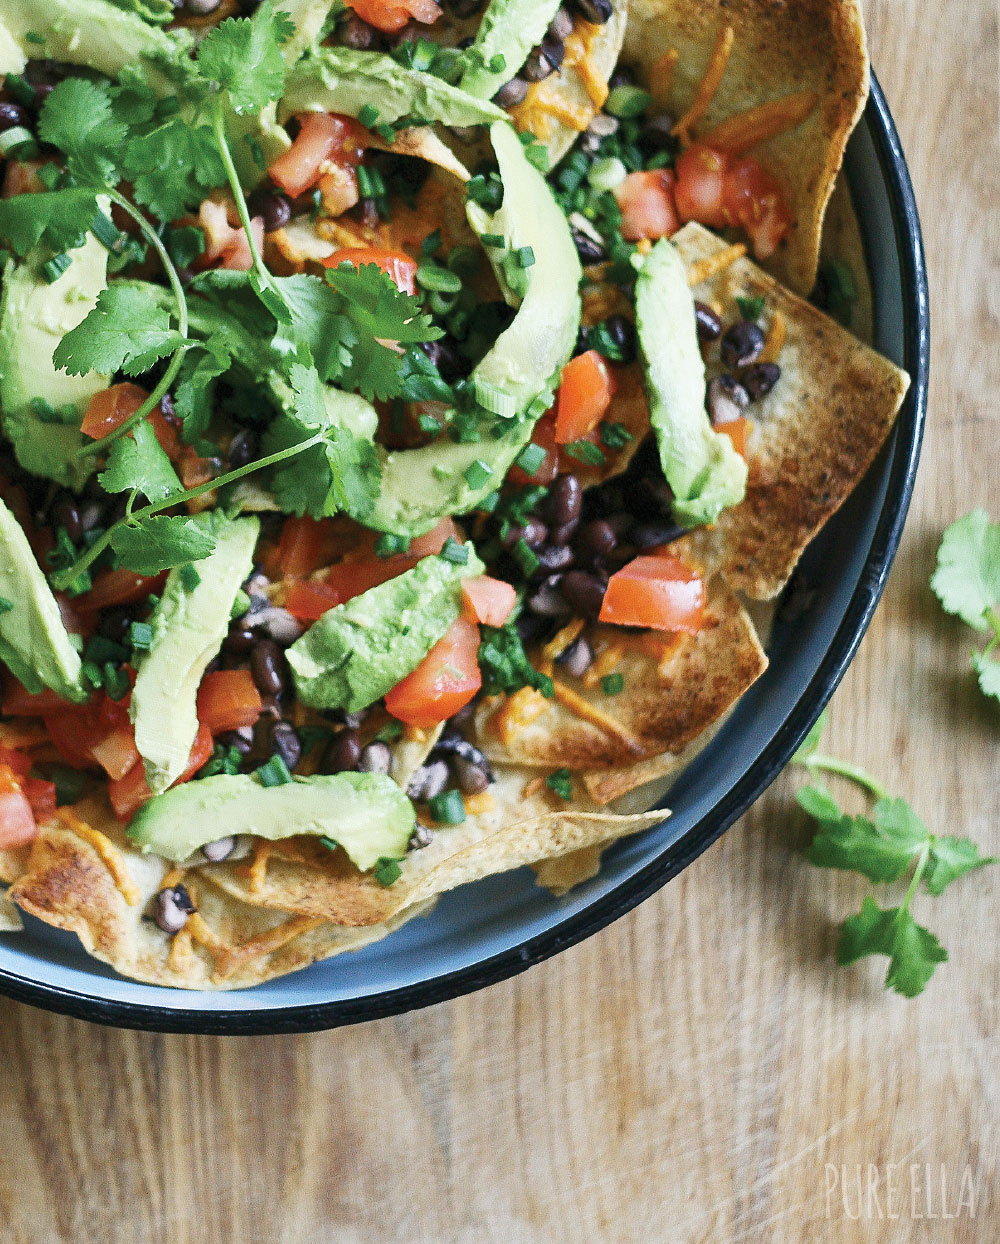 Pure-Ella-Healthy-Gluten-free-Vegan-Tortilla-Nachos-Party-Bowl2